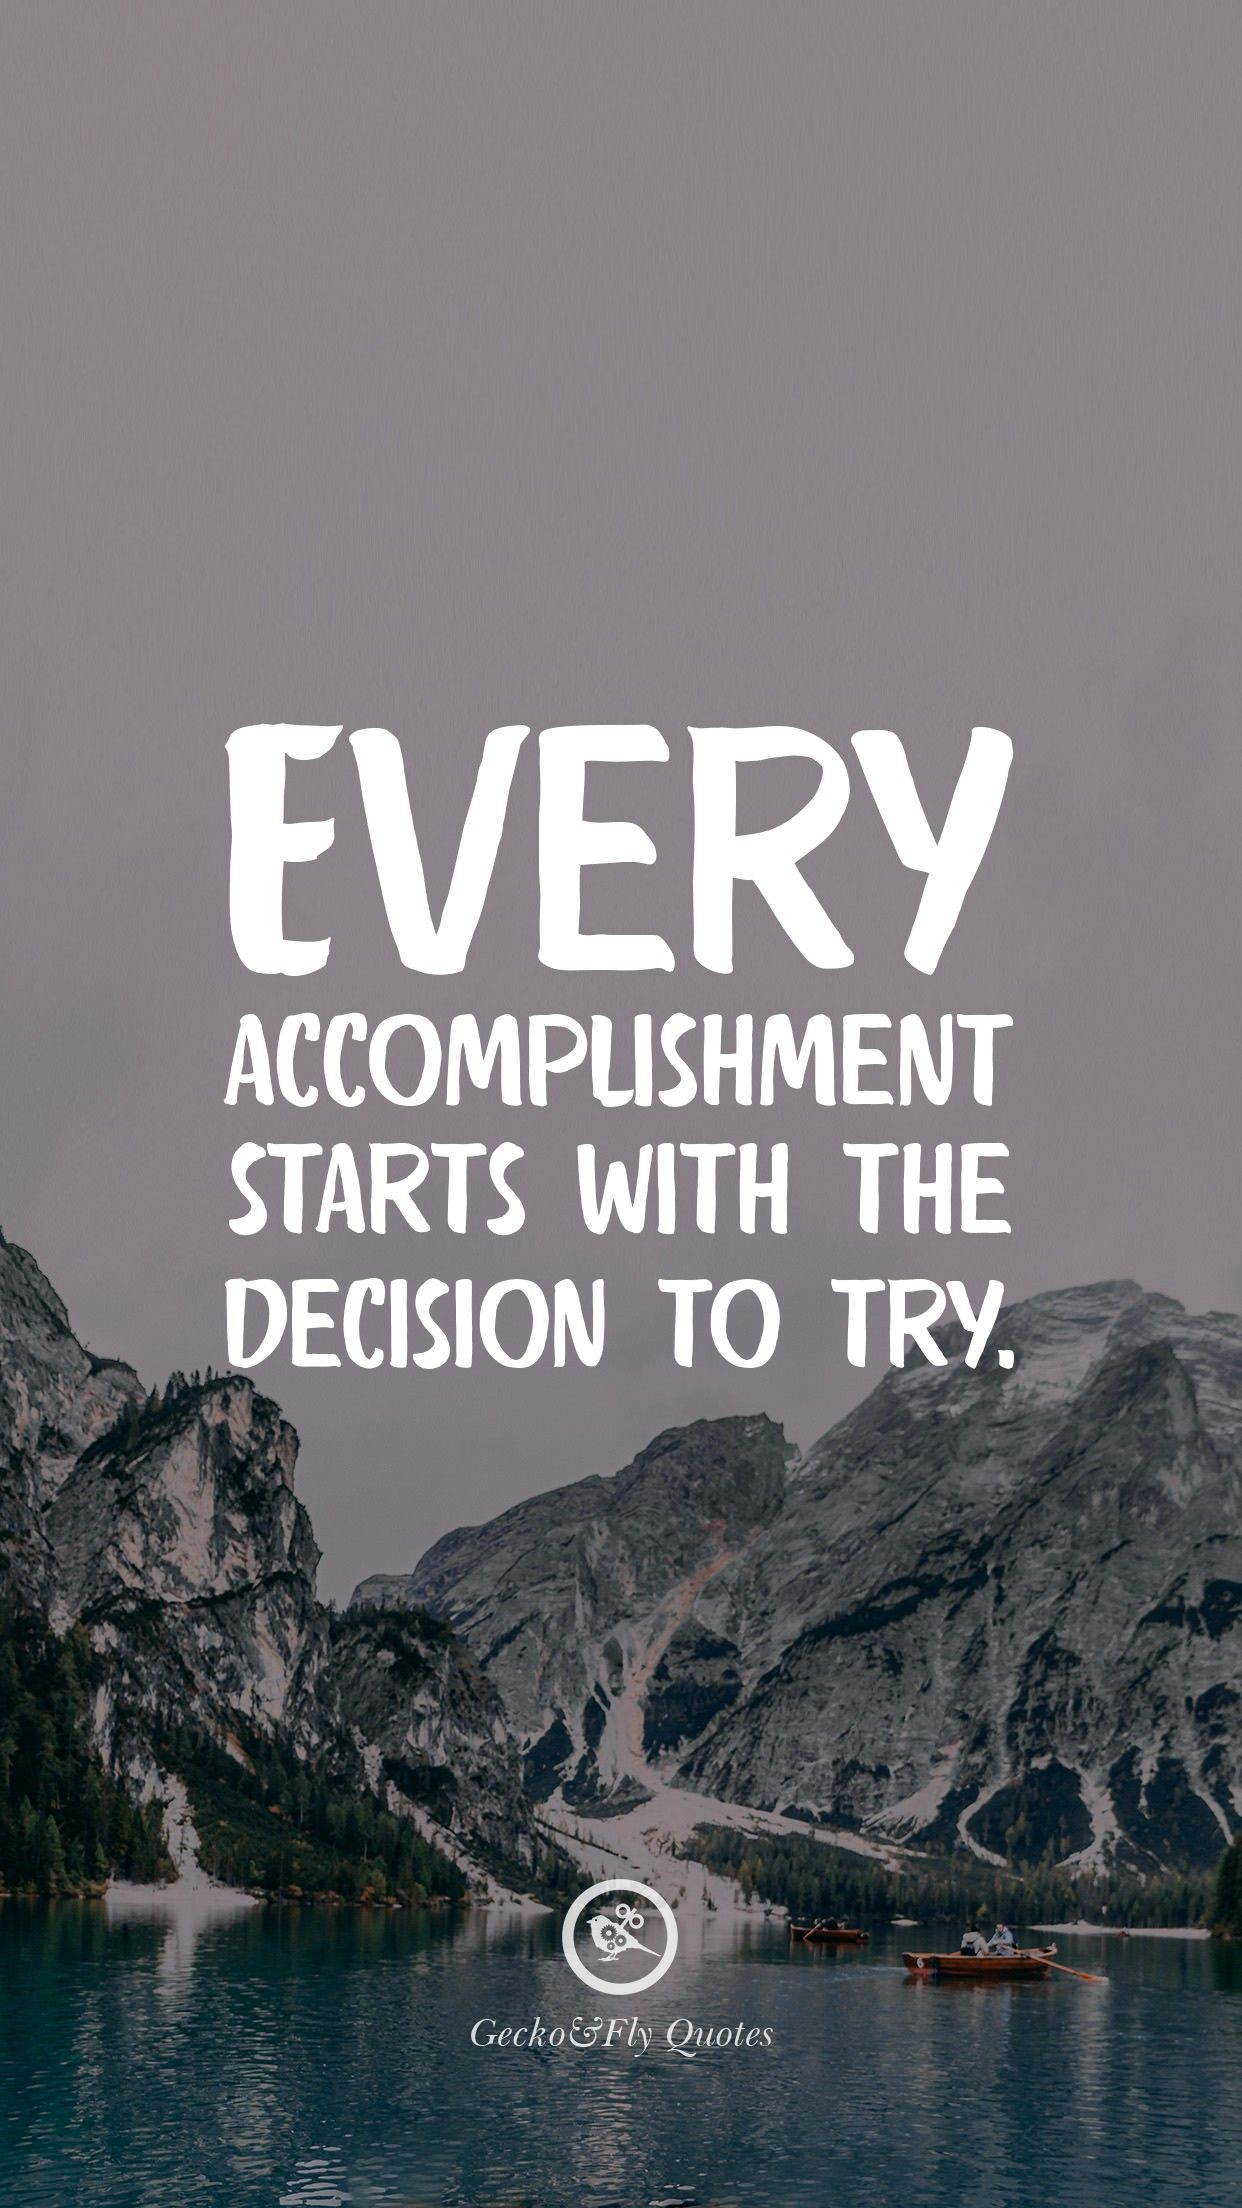 Motivational Quotes For Students Success Motivational Quotes For Students Studying Motivational Quotes Hd Wallpaper Quotes Fly Quotes Accomplishment Quotes